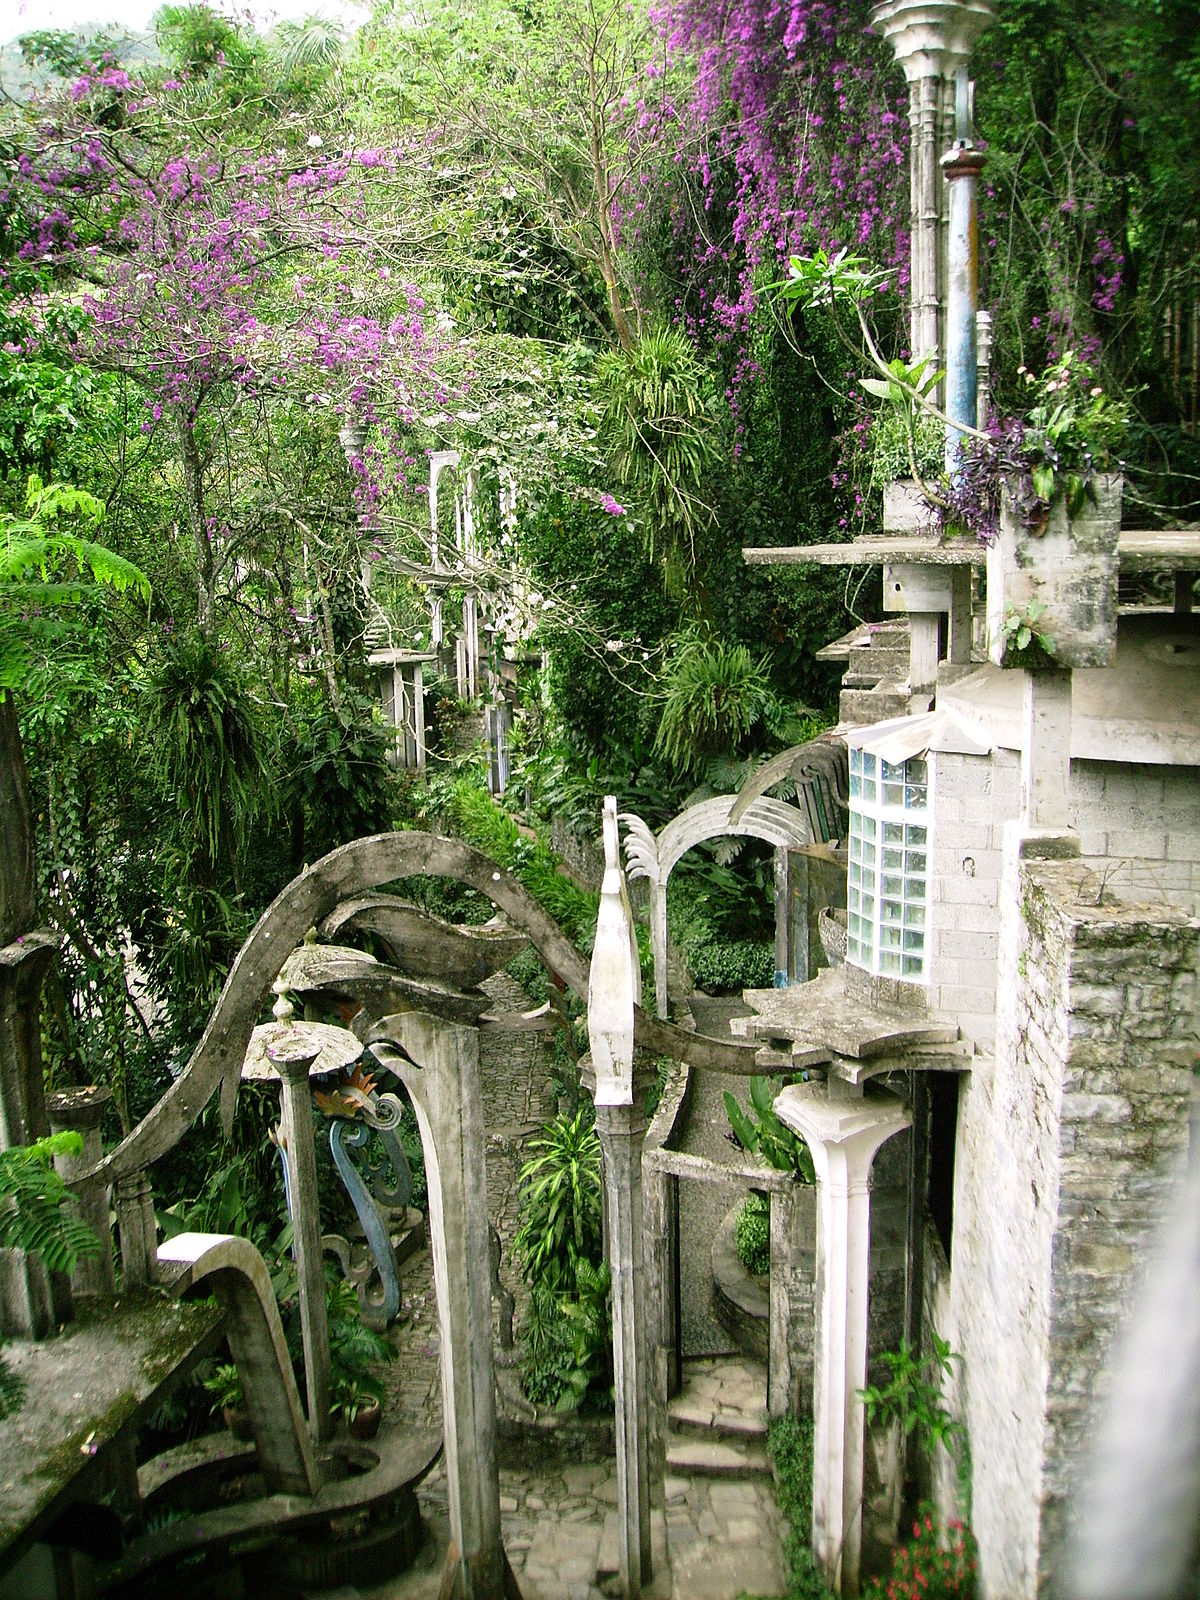 Las pozas wikipedia la enciclopedia libre for Jardin surrealista xilitla